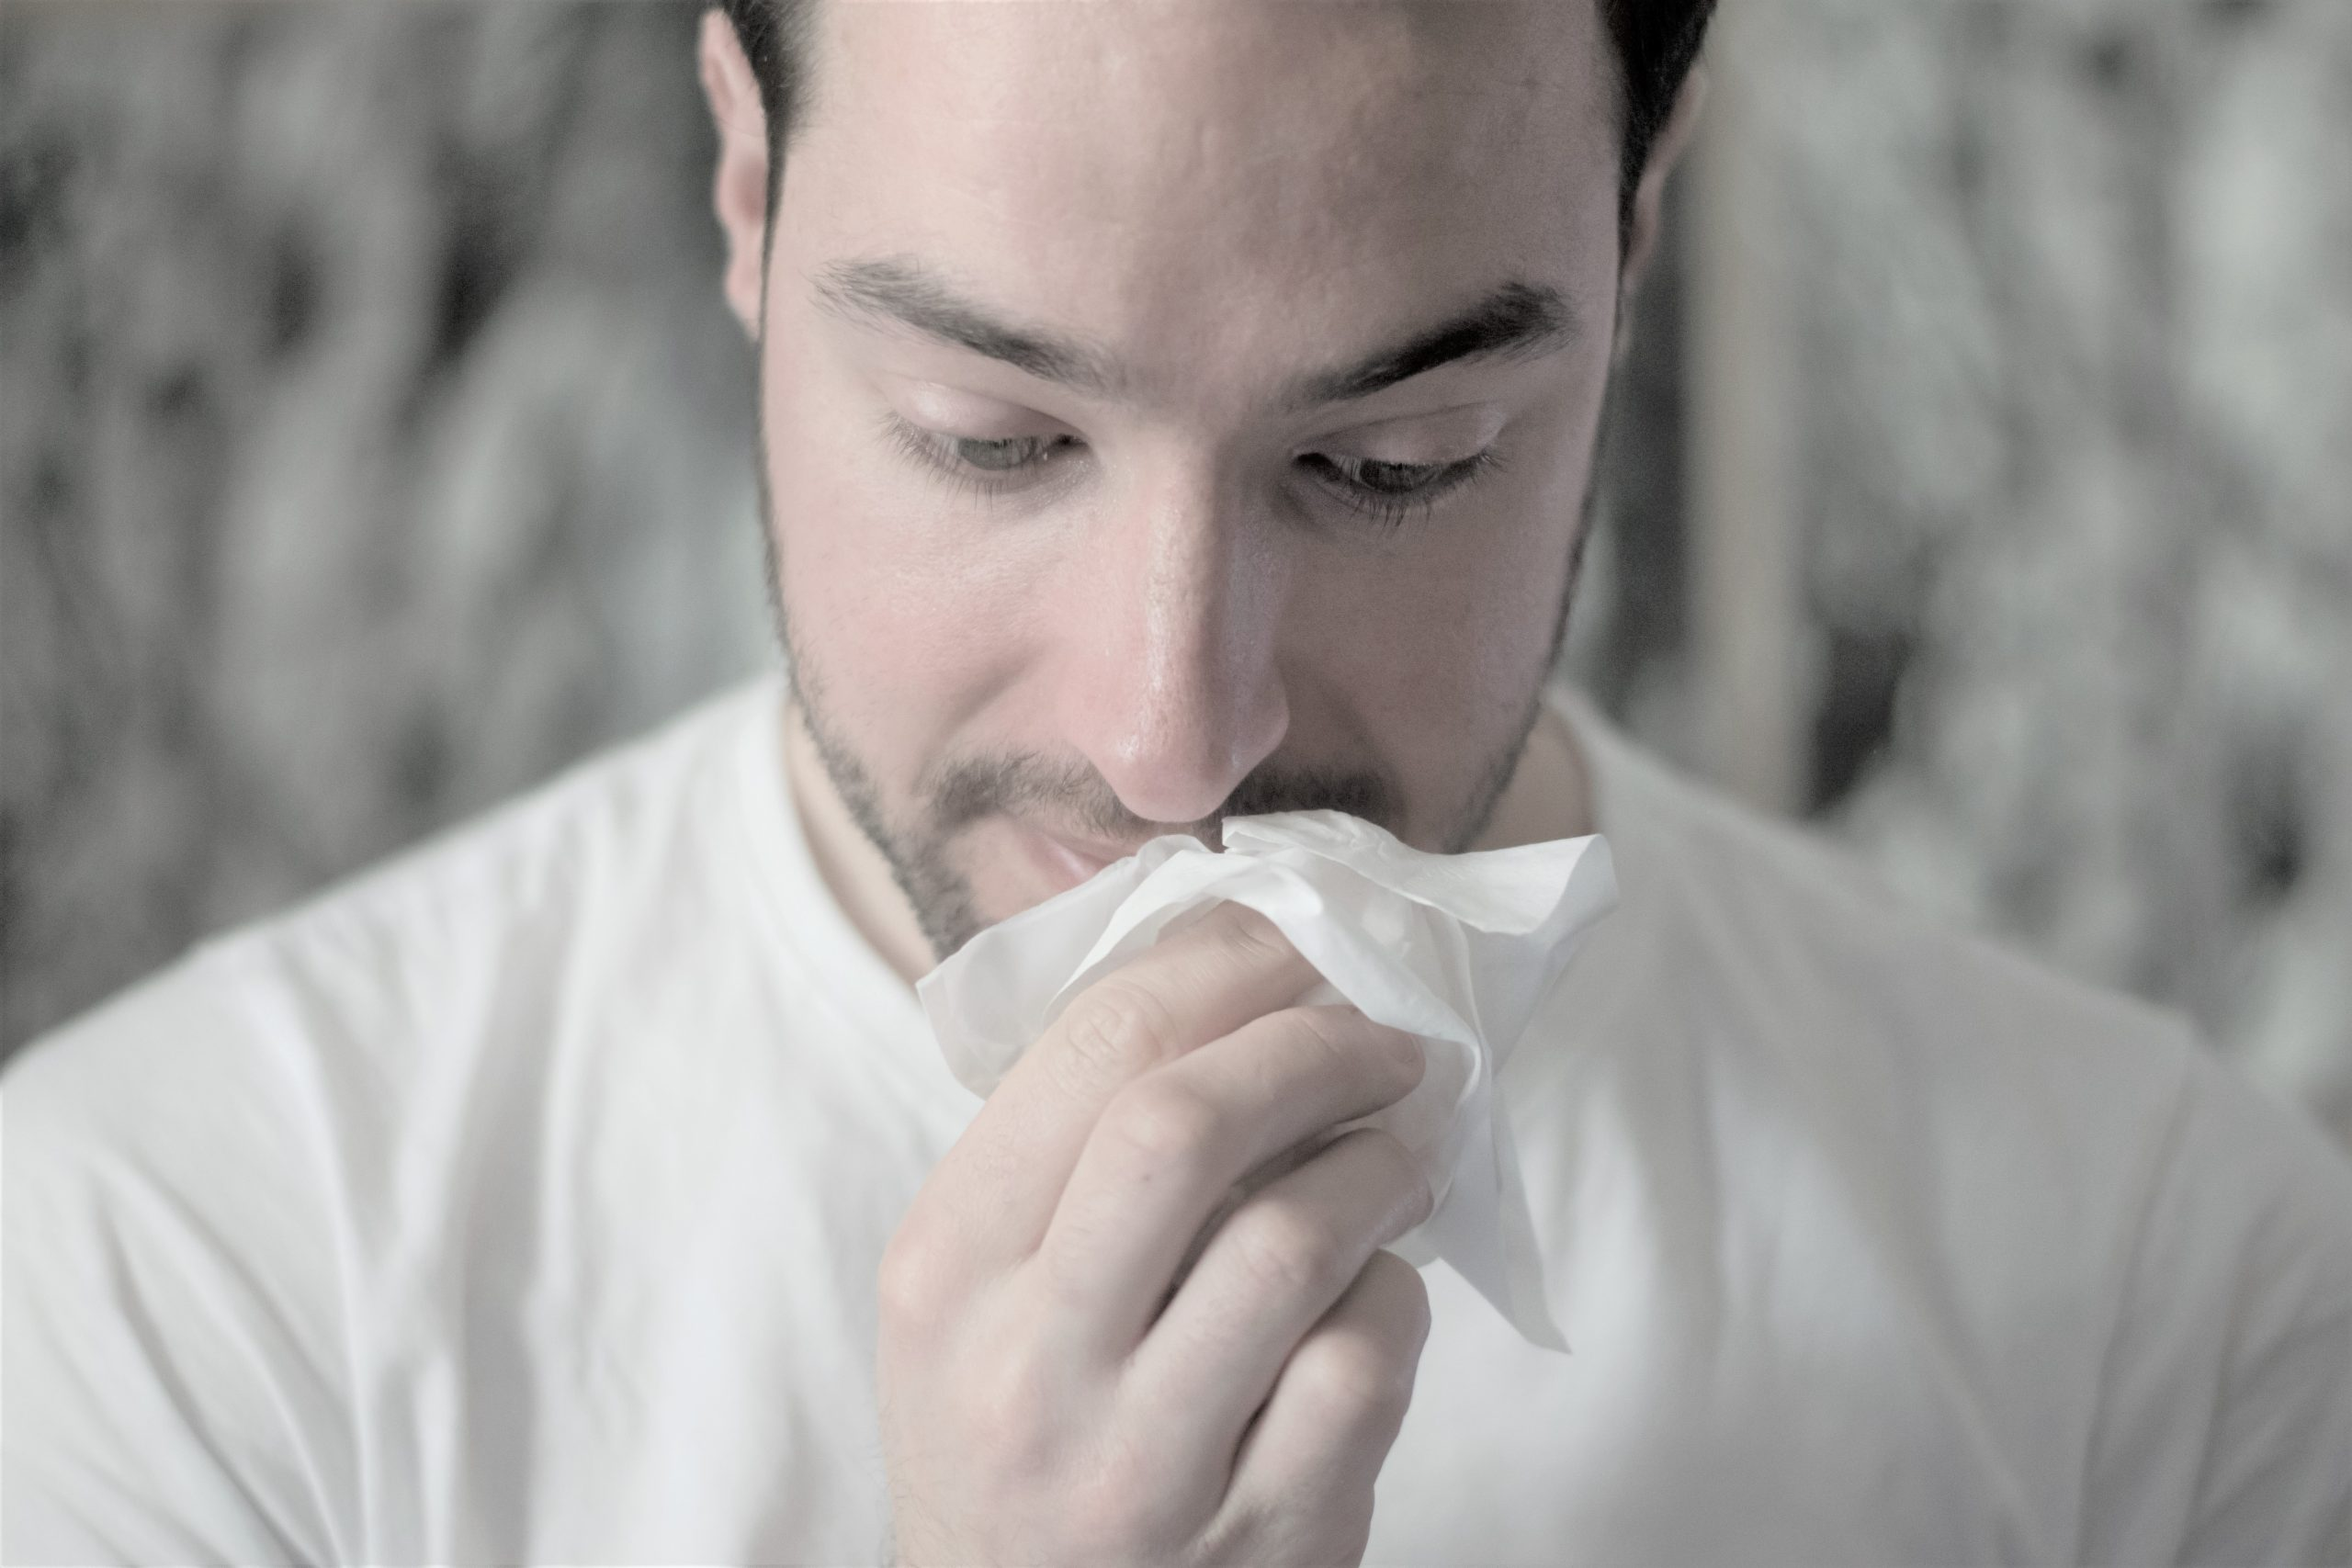 chronic illness and allergies can be signs of imbalance in the body